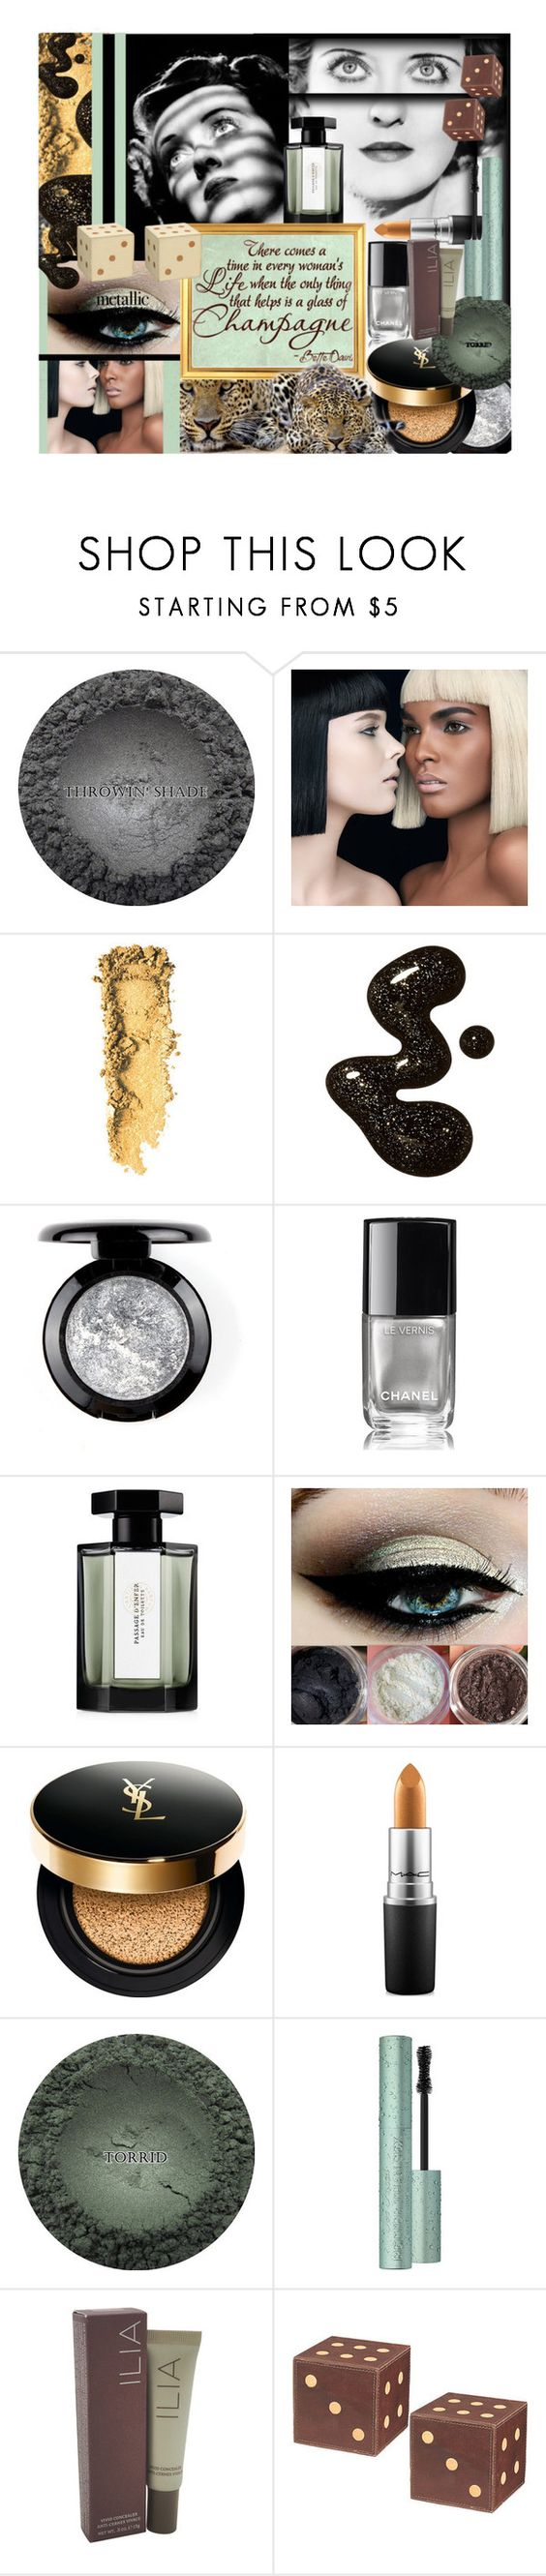 Tumbling Dice Bette Davis Eyes By Sharee64 Liked On Polyvore Eye Featuring Beauty